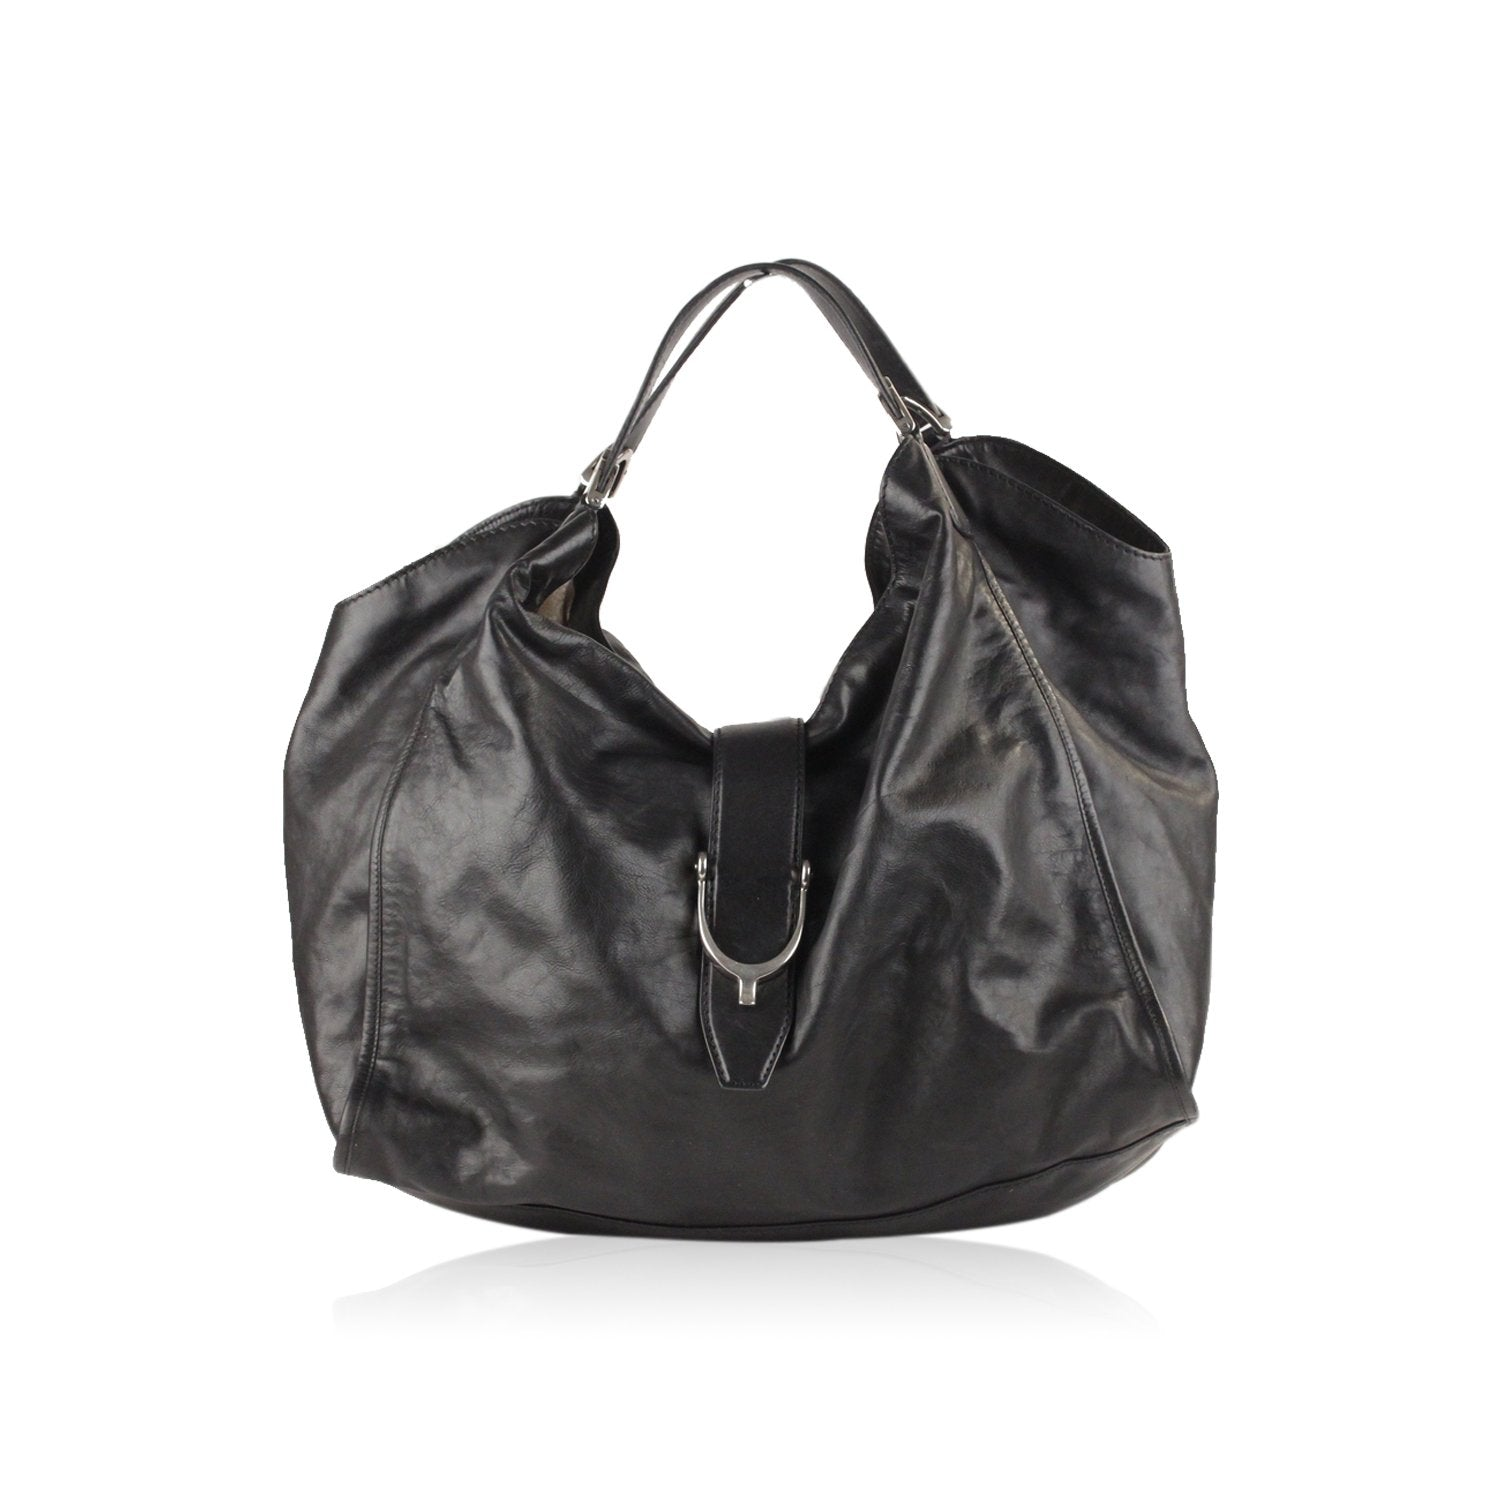 c3b875a3d80 Enjoy Gucci Stirrup Hobo Bag at OPHERTYCIOCCI – OPHERTY   CIOCCI